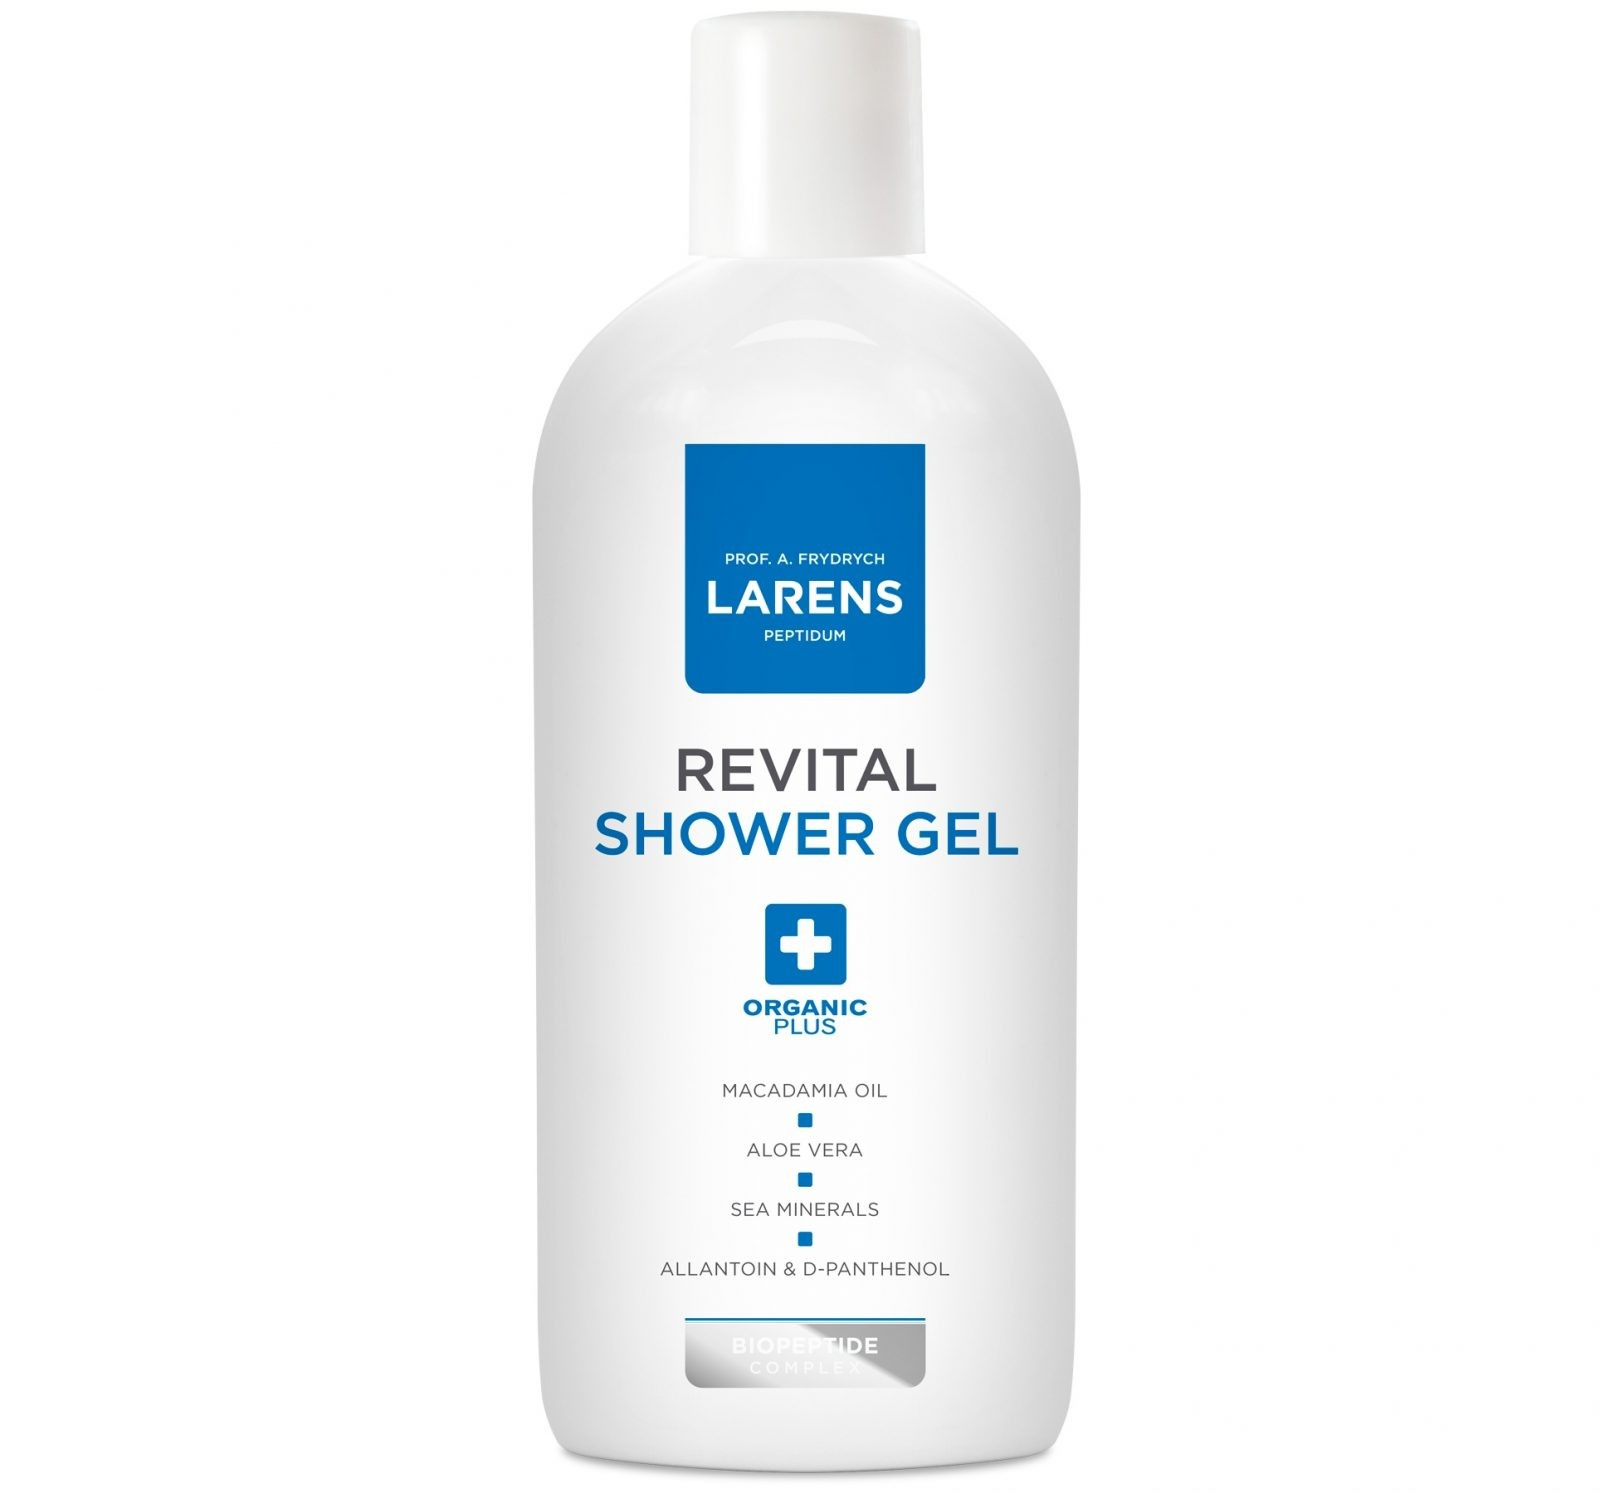 Revital Shower Gel Larens